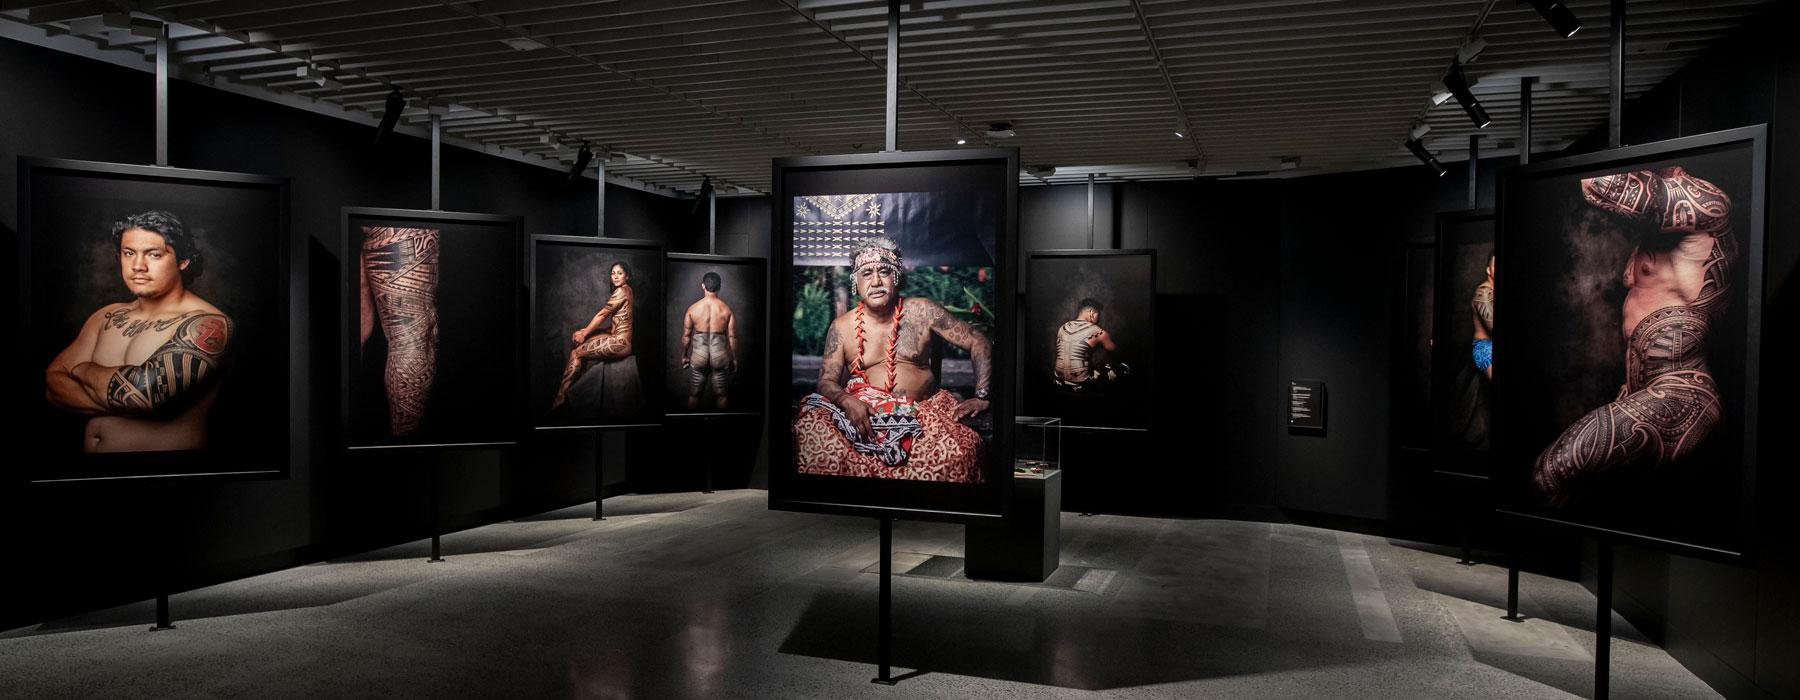 Inside an exhibition, large photographs of tattooed men and women hang on the walls